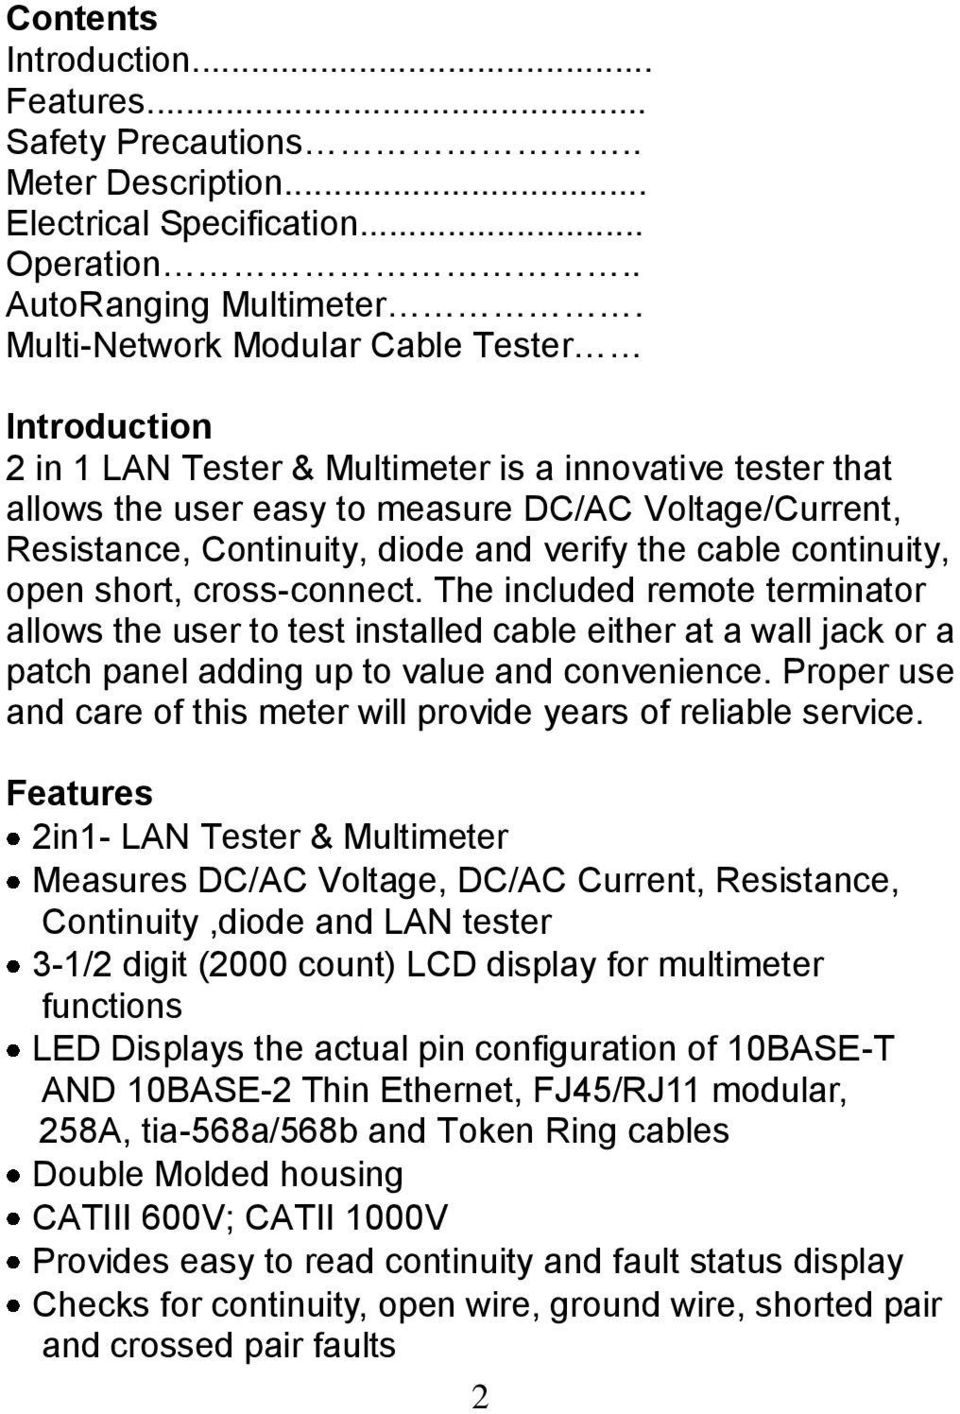 Instruction Manual. 2in1 LAN Tester & Multimeter. Model: LA PDF